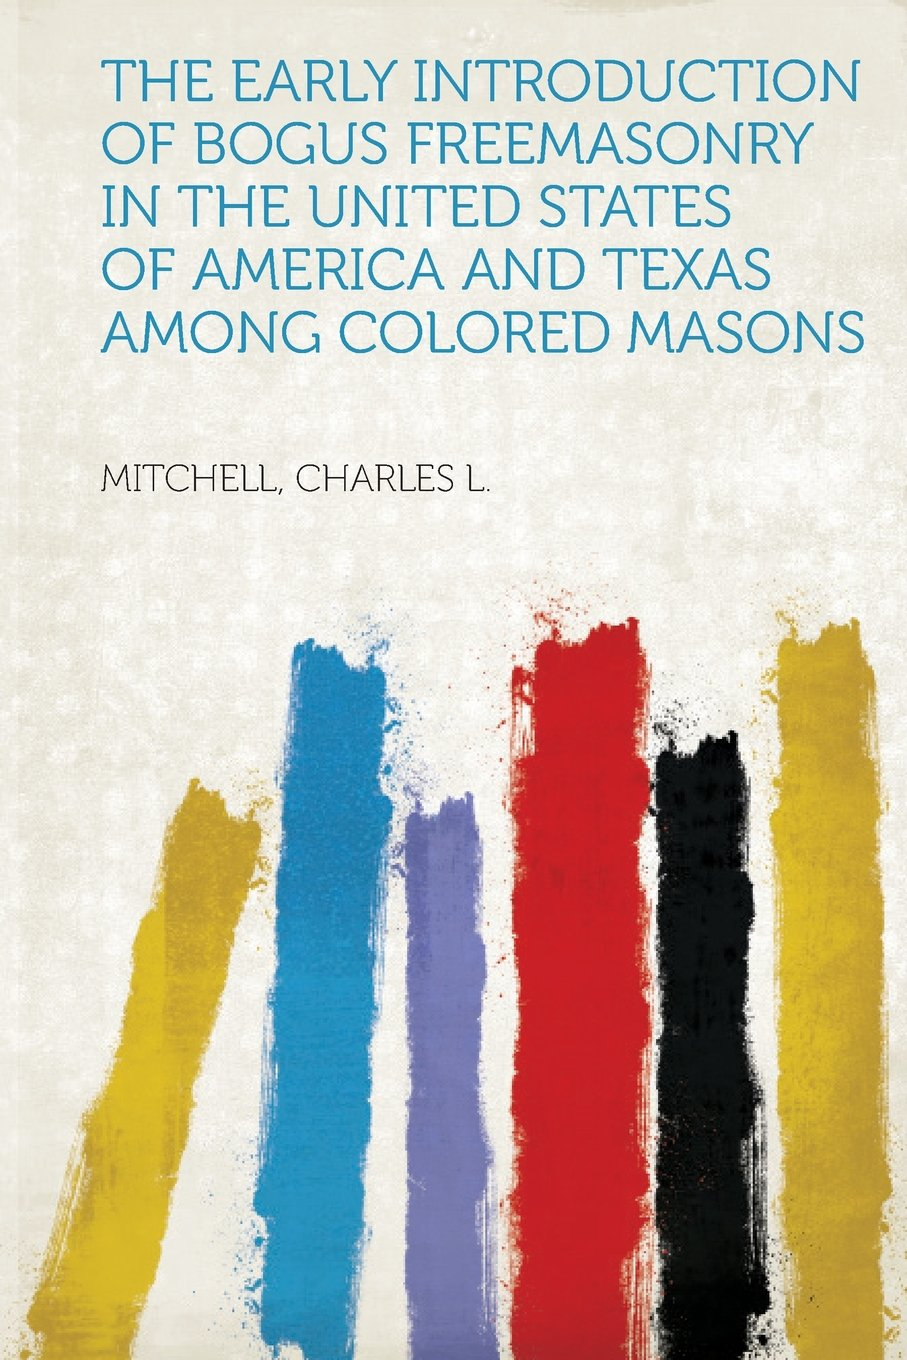 Download The Early Introduction of Bogus Freemasonry in the United States of America and Texas Among Colored Masons pdf